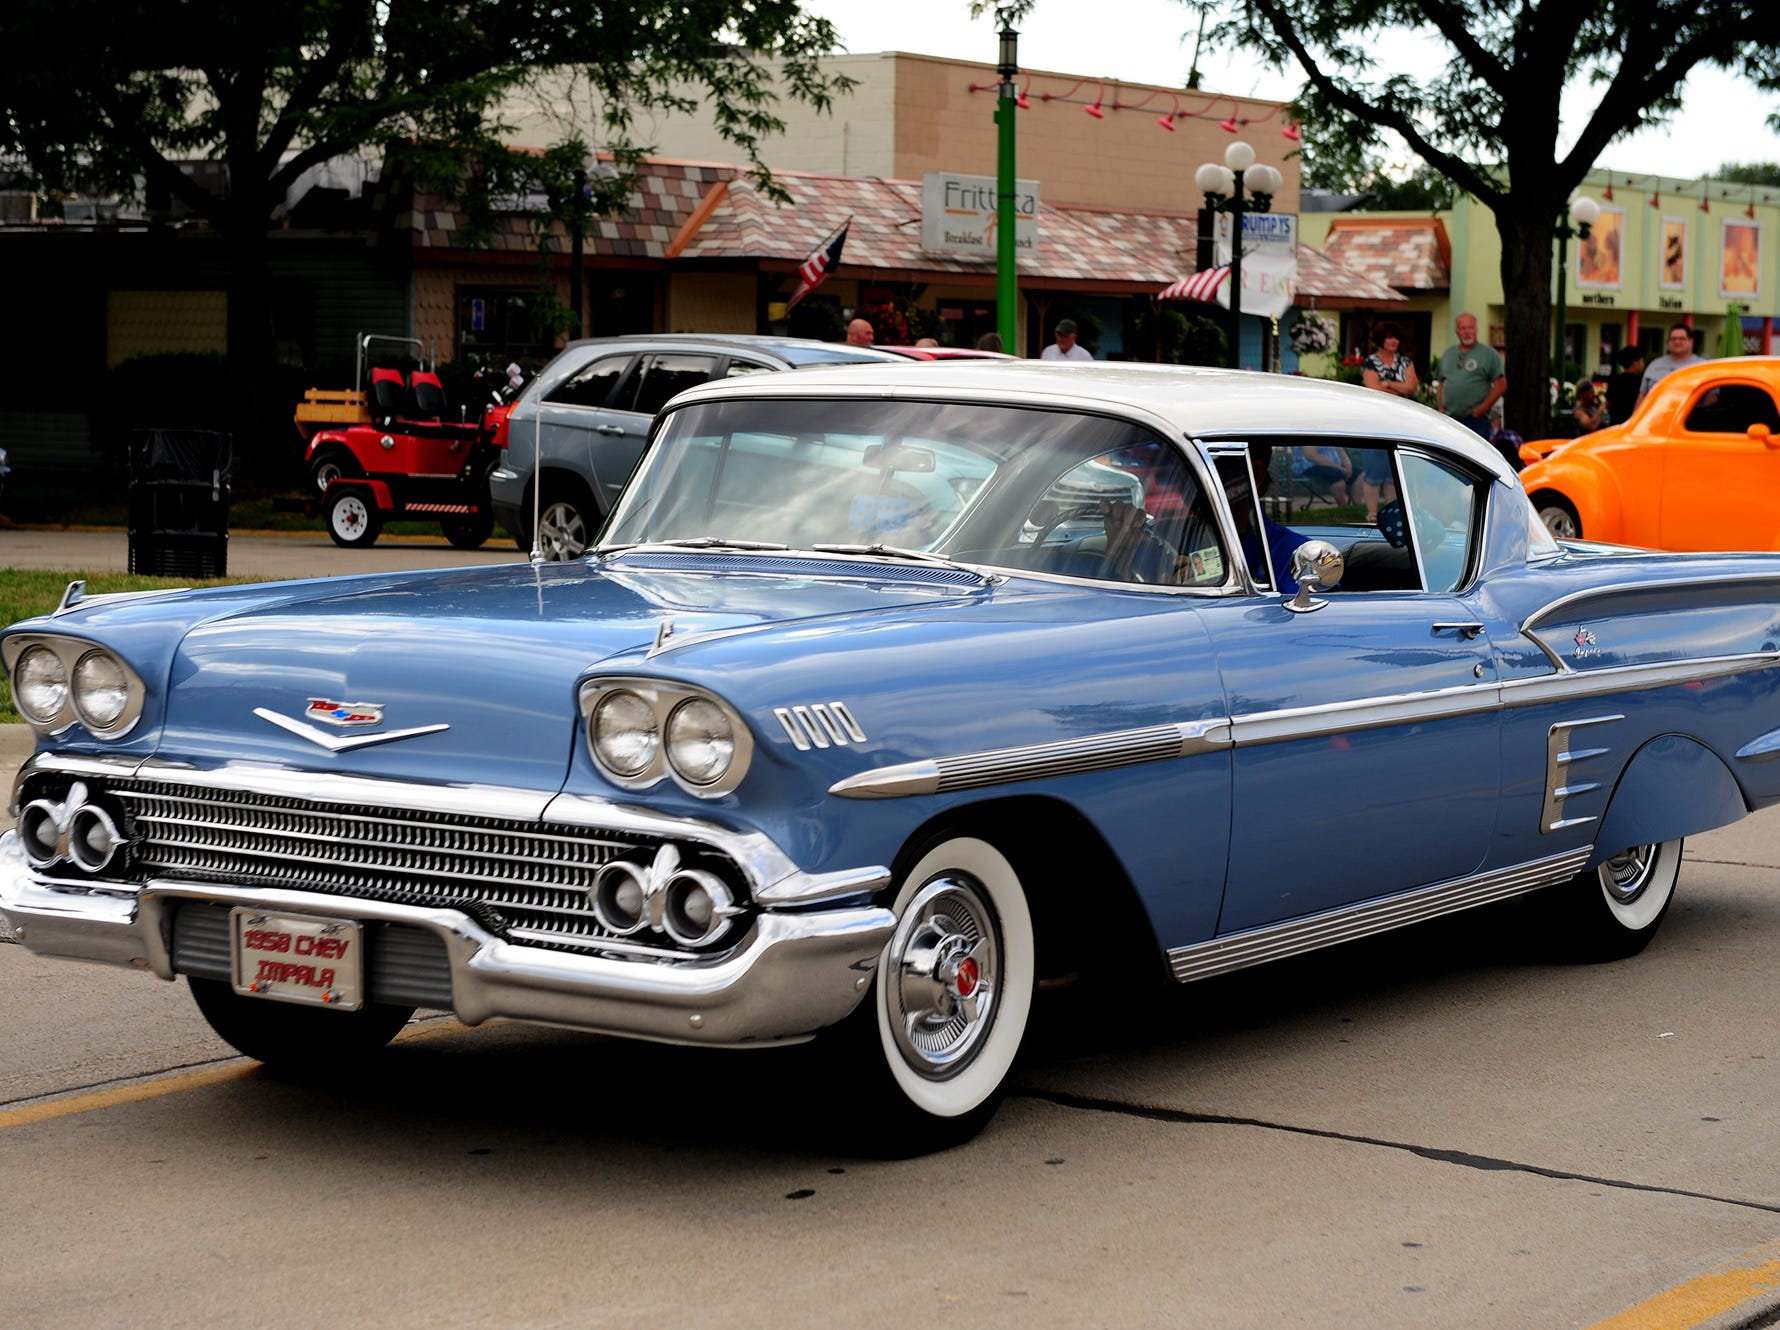 A 1958 Chevy Impala cruises down Woodward in Clawson on Aug. 10, 2013.